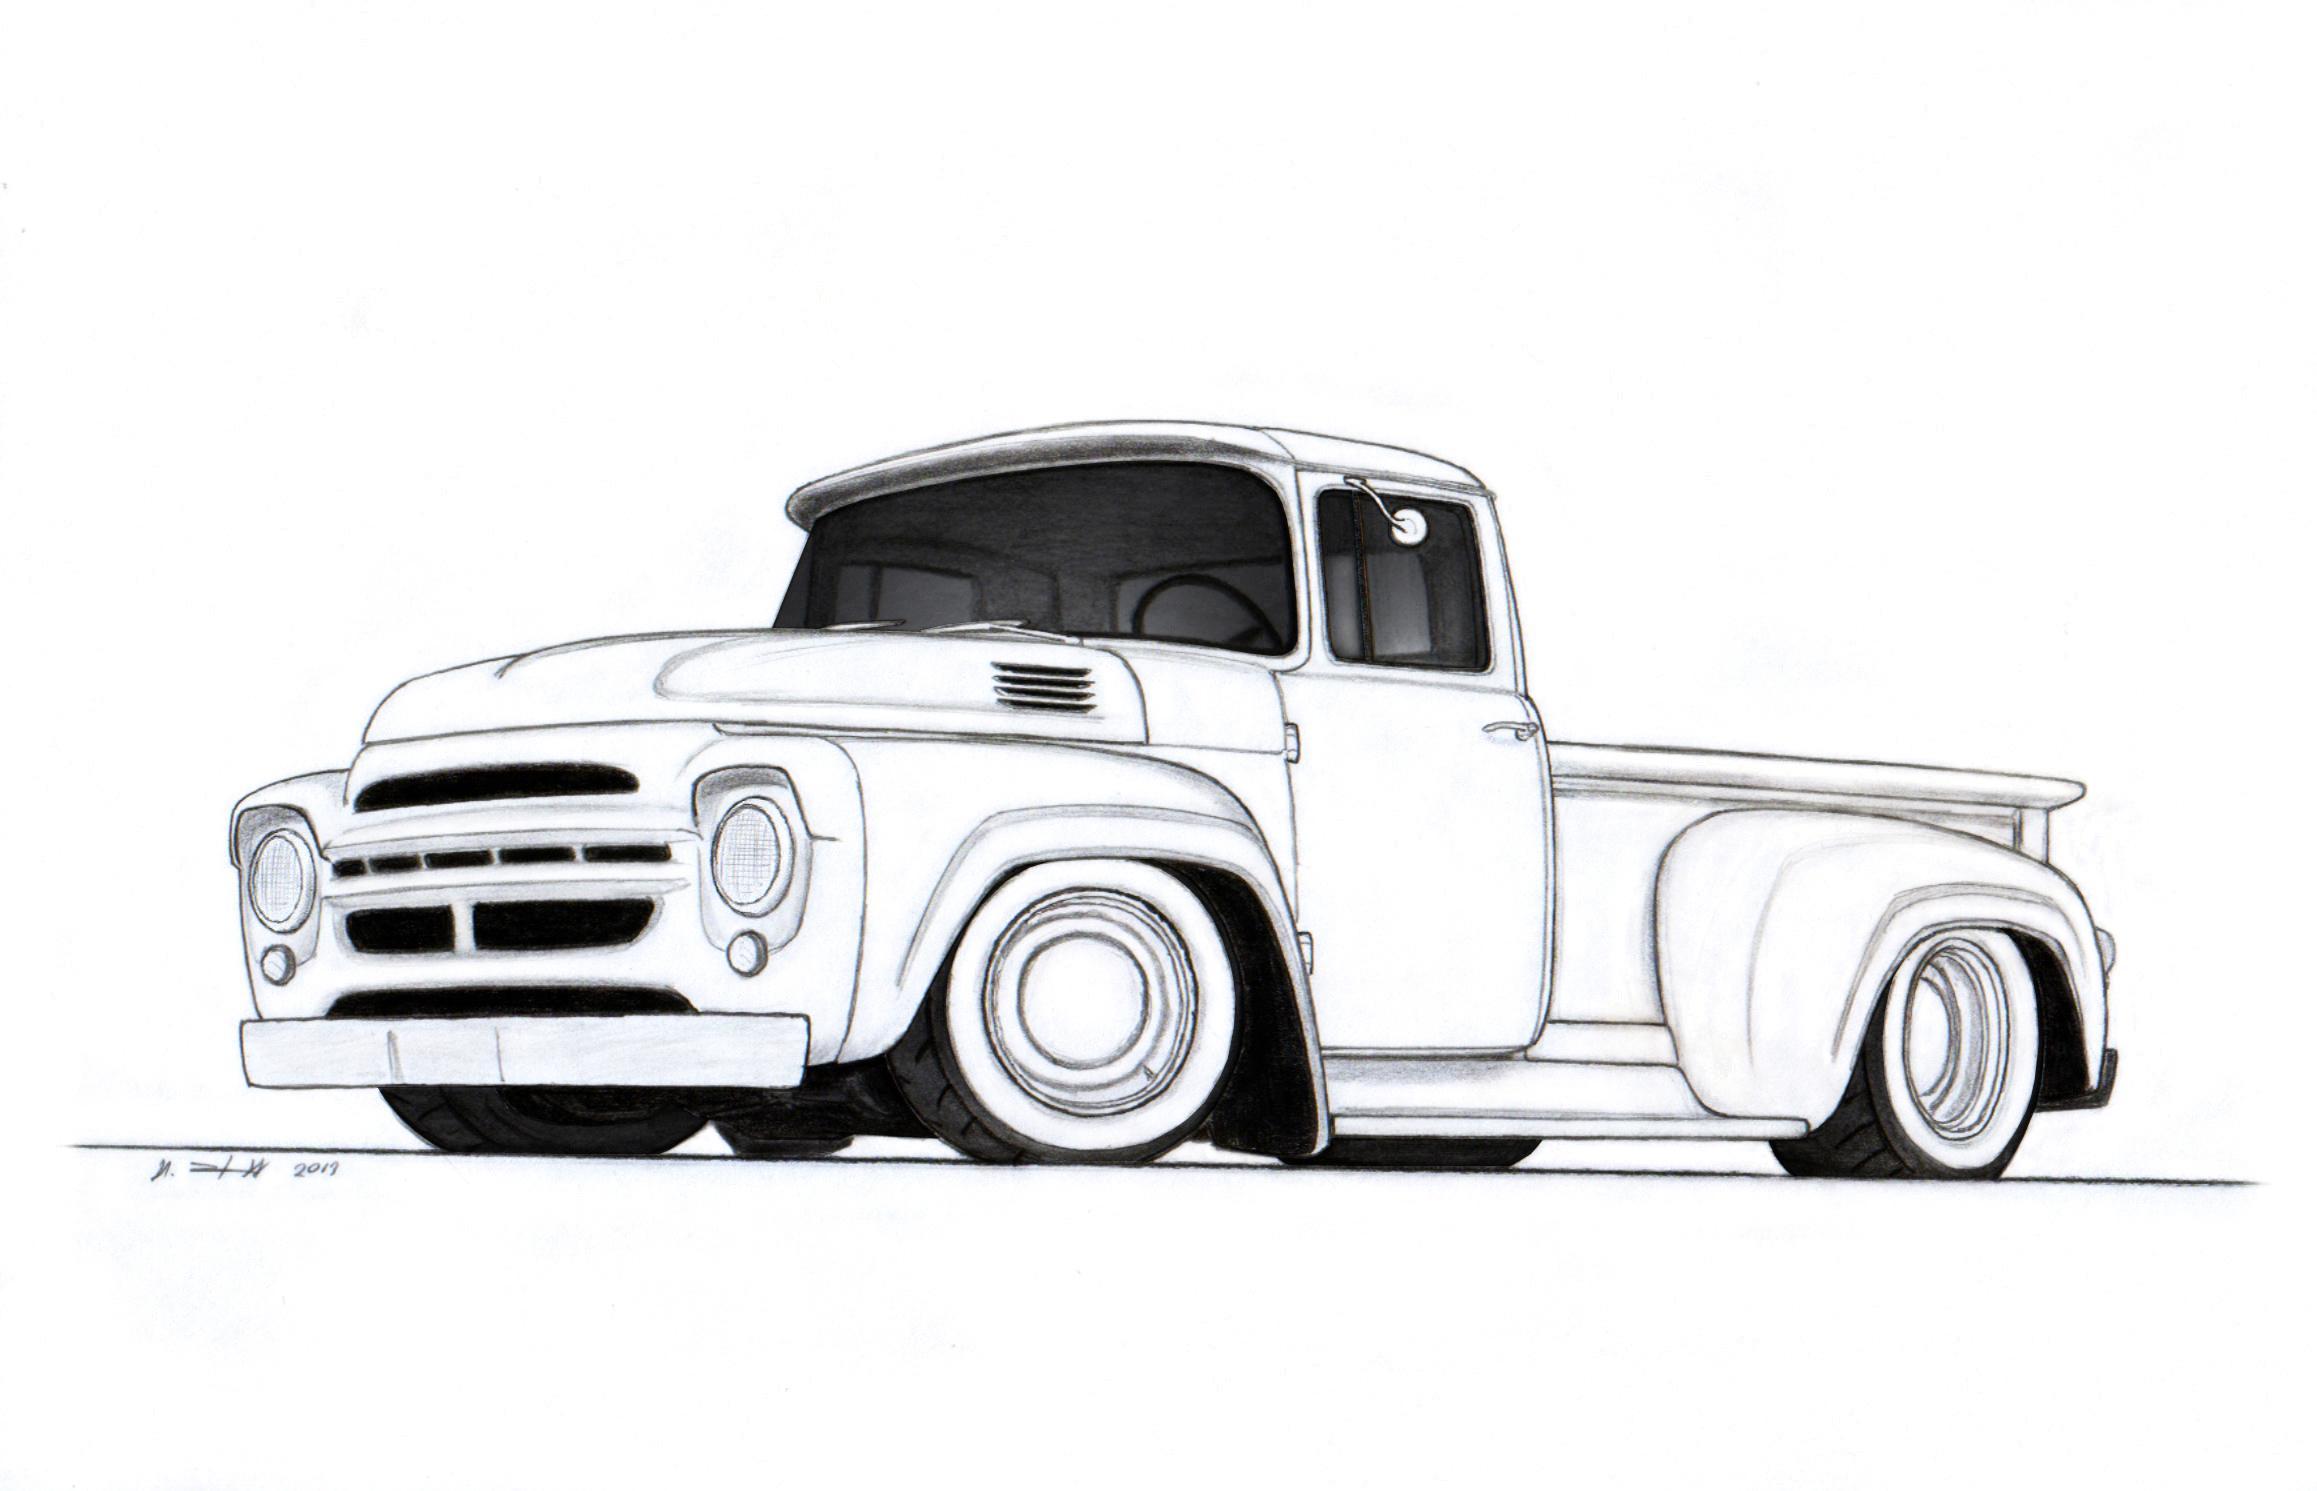 Drawn truck chevy Drawing drawing art vintage vertualissimo